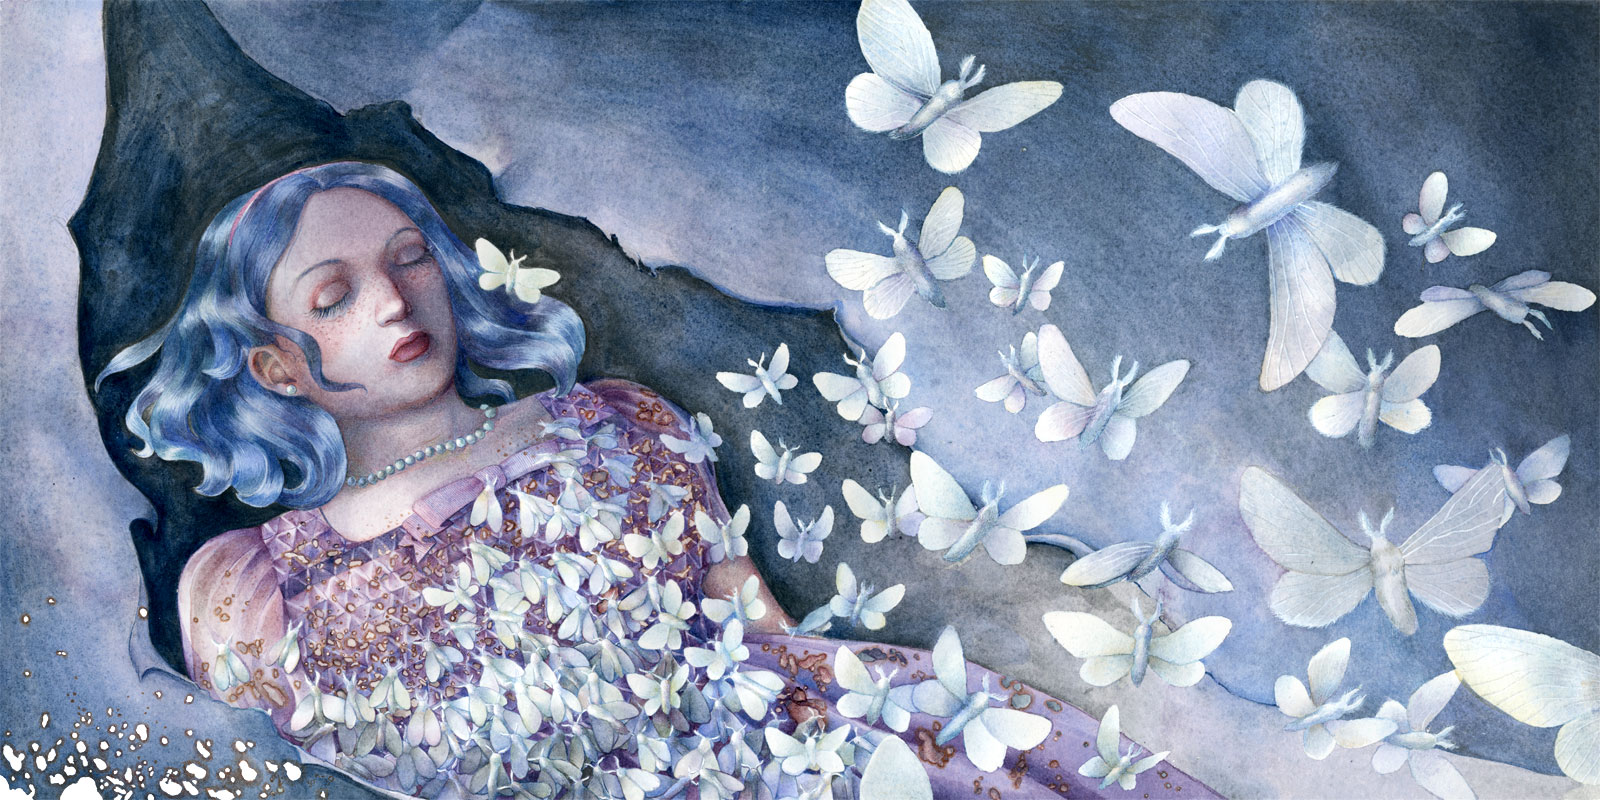 A blue-haired young girl lies dead with her features intacts, her purple dress eaten by a flock of moths that fly away from her body.